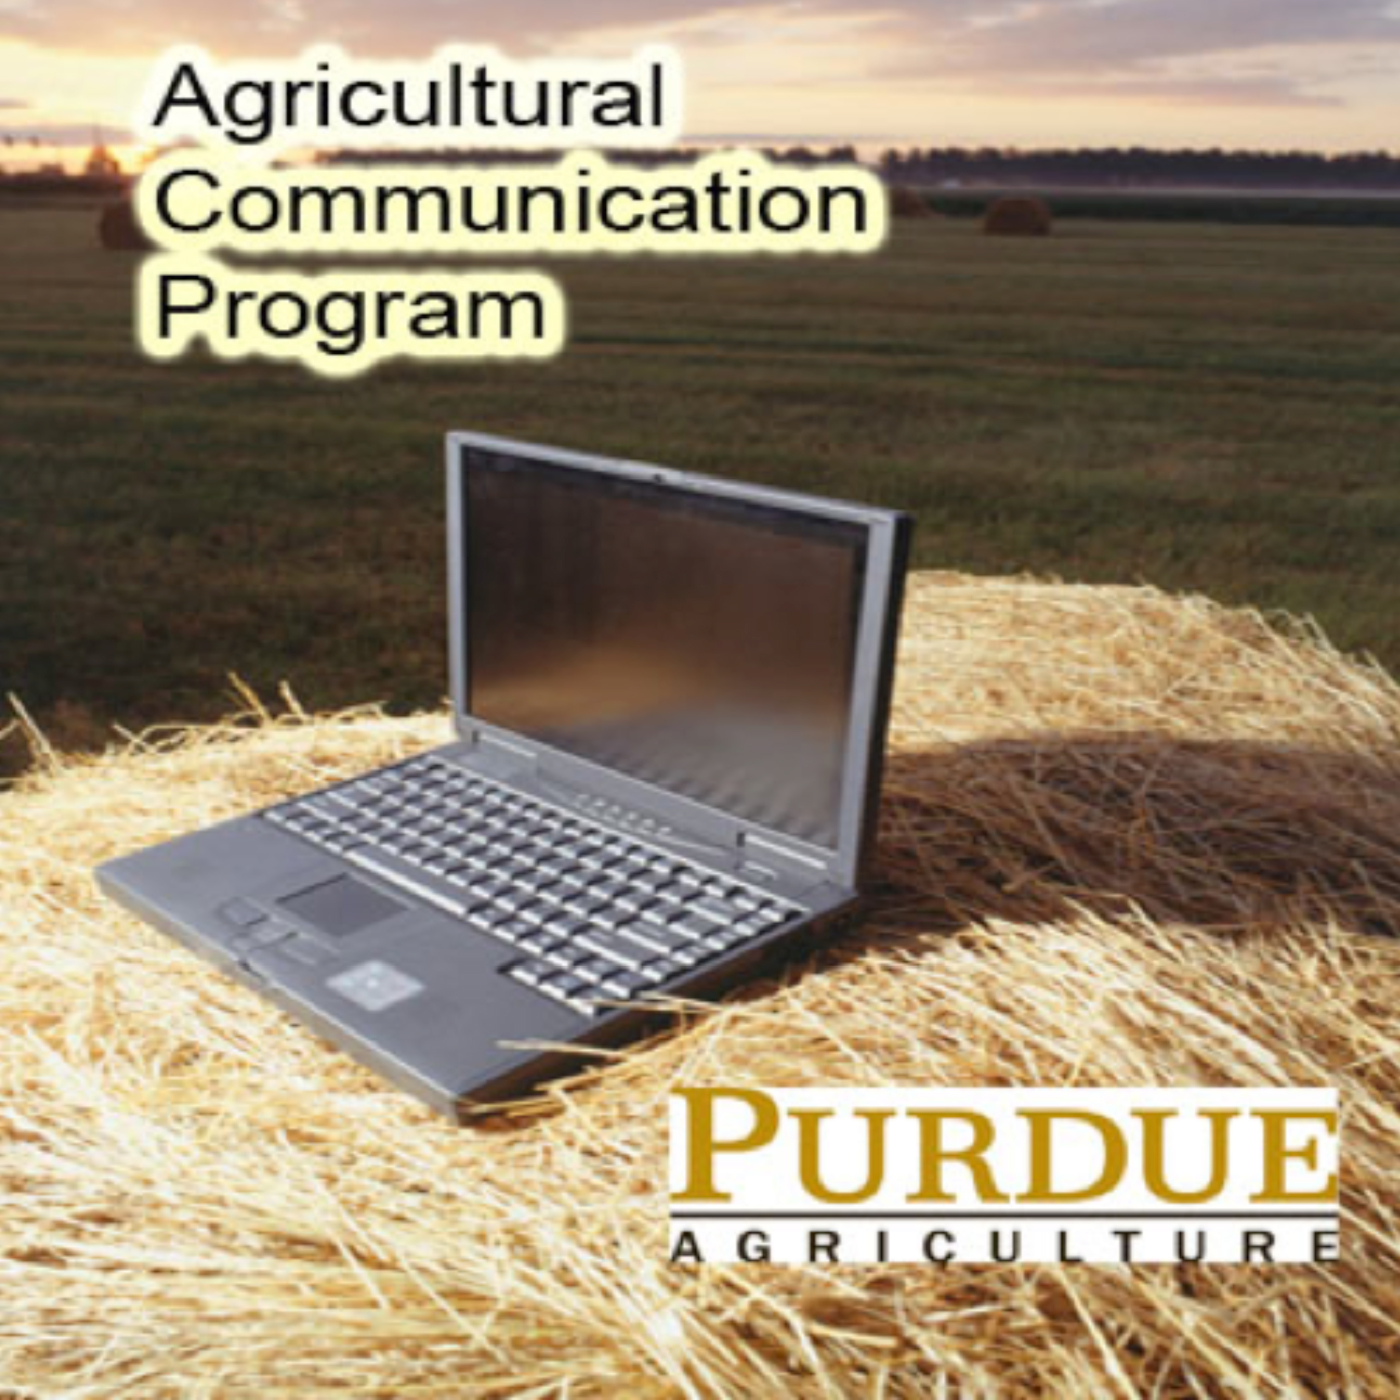 Youth Development & Agricultural Eduation: Agricultural Communication